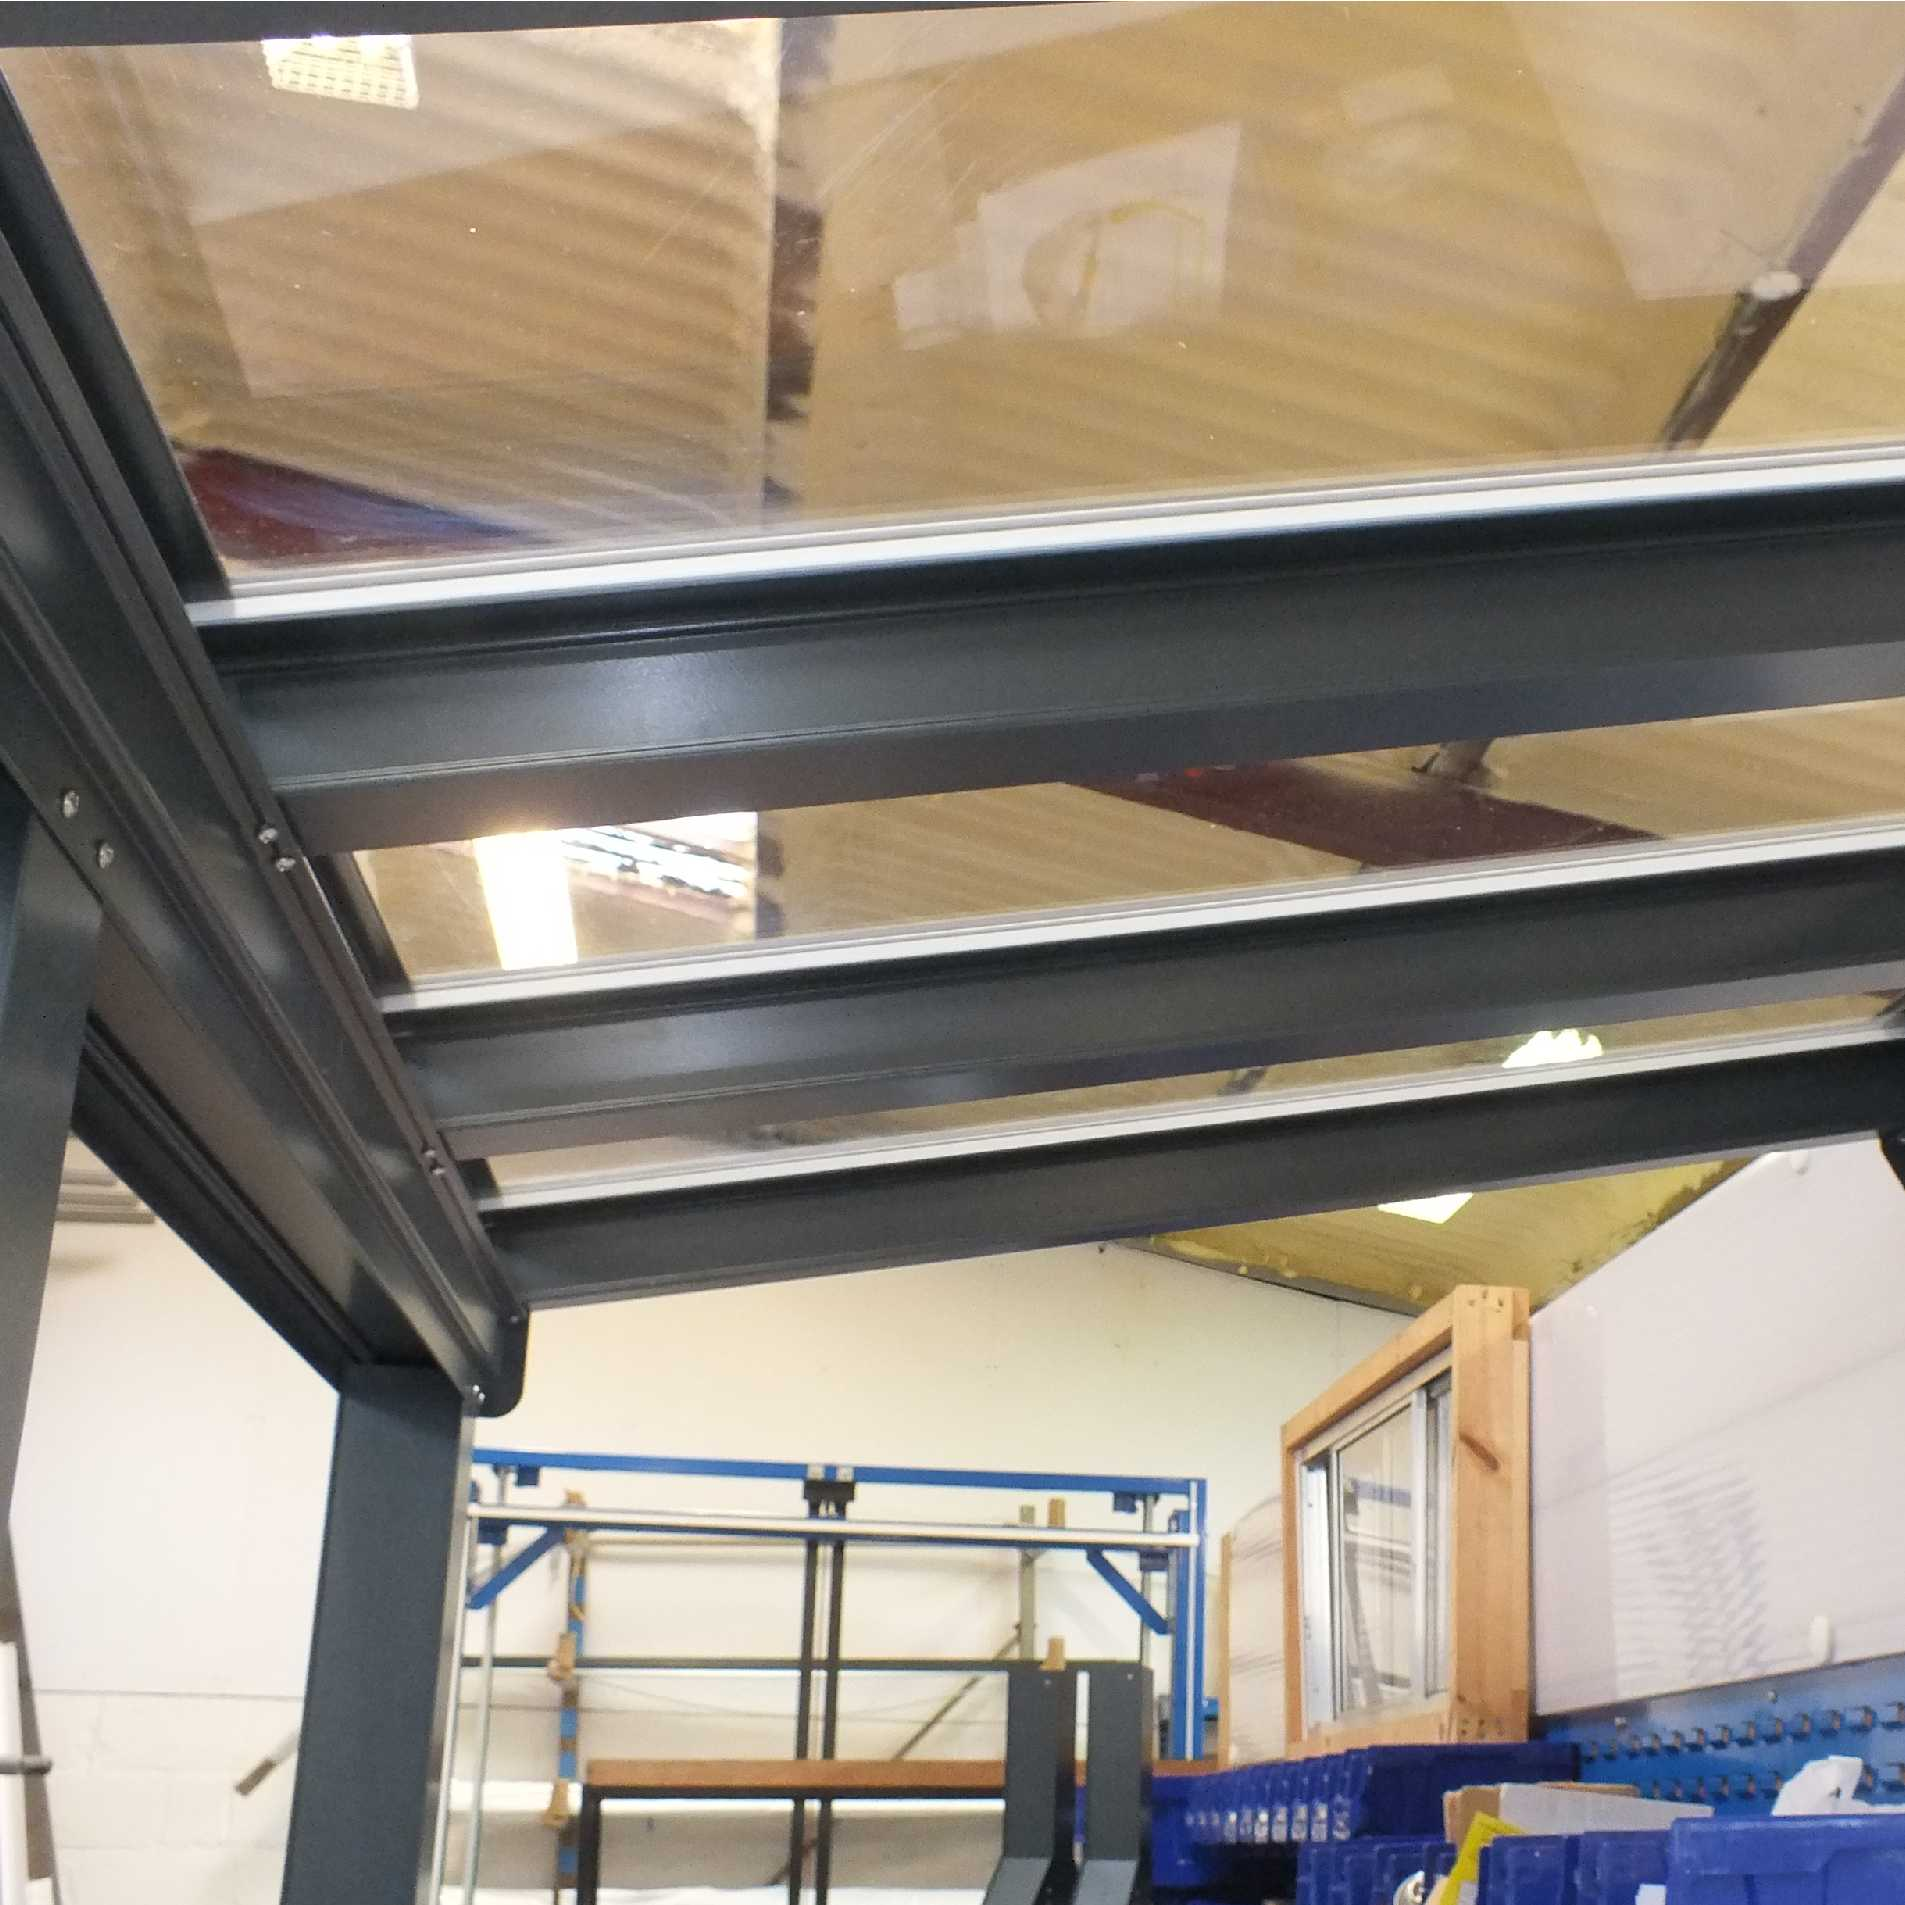 Great deals on Omega Smart Lean-To Canopy, Anthracite Grey, 6mm Glass Clear Plate Polycarbonate Glazing - 7.0m (W) x 2.0m (P), (4) Supporting Posts